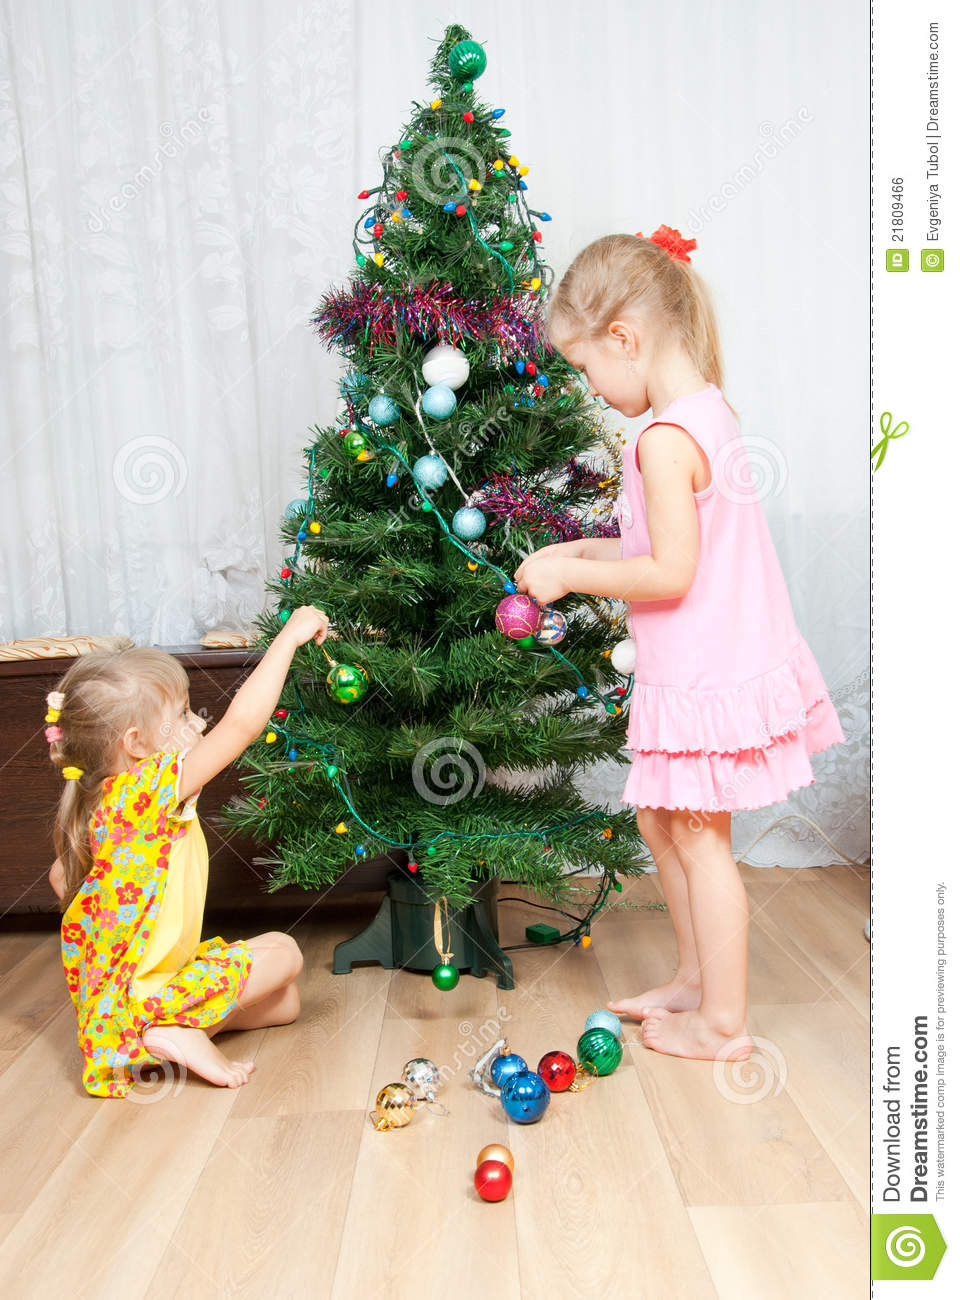 Children Decorate The Christmas Tree Royalty Free Stock Image ...